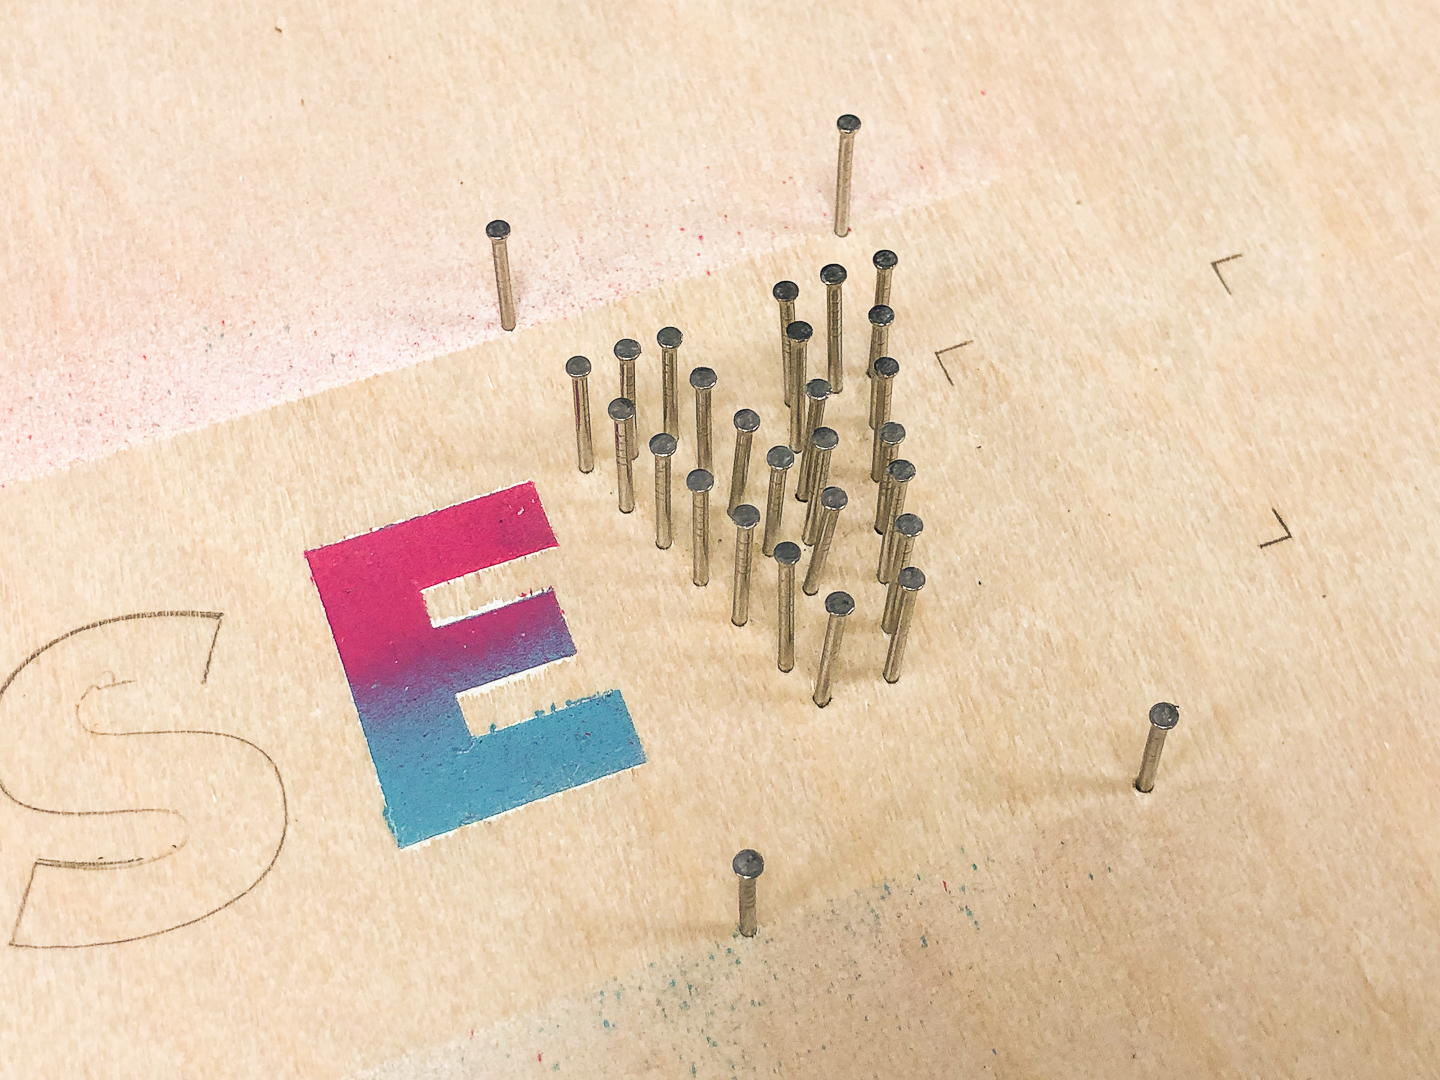 Panel pins in shape of letter V on plywood